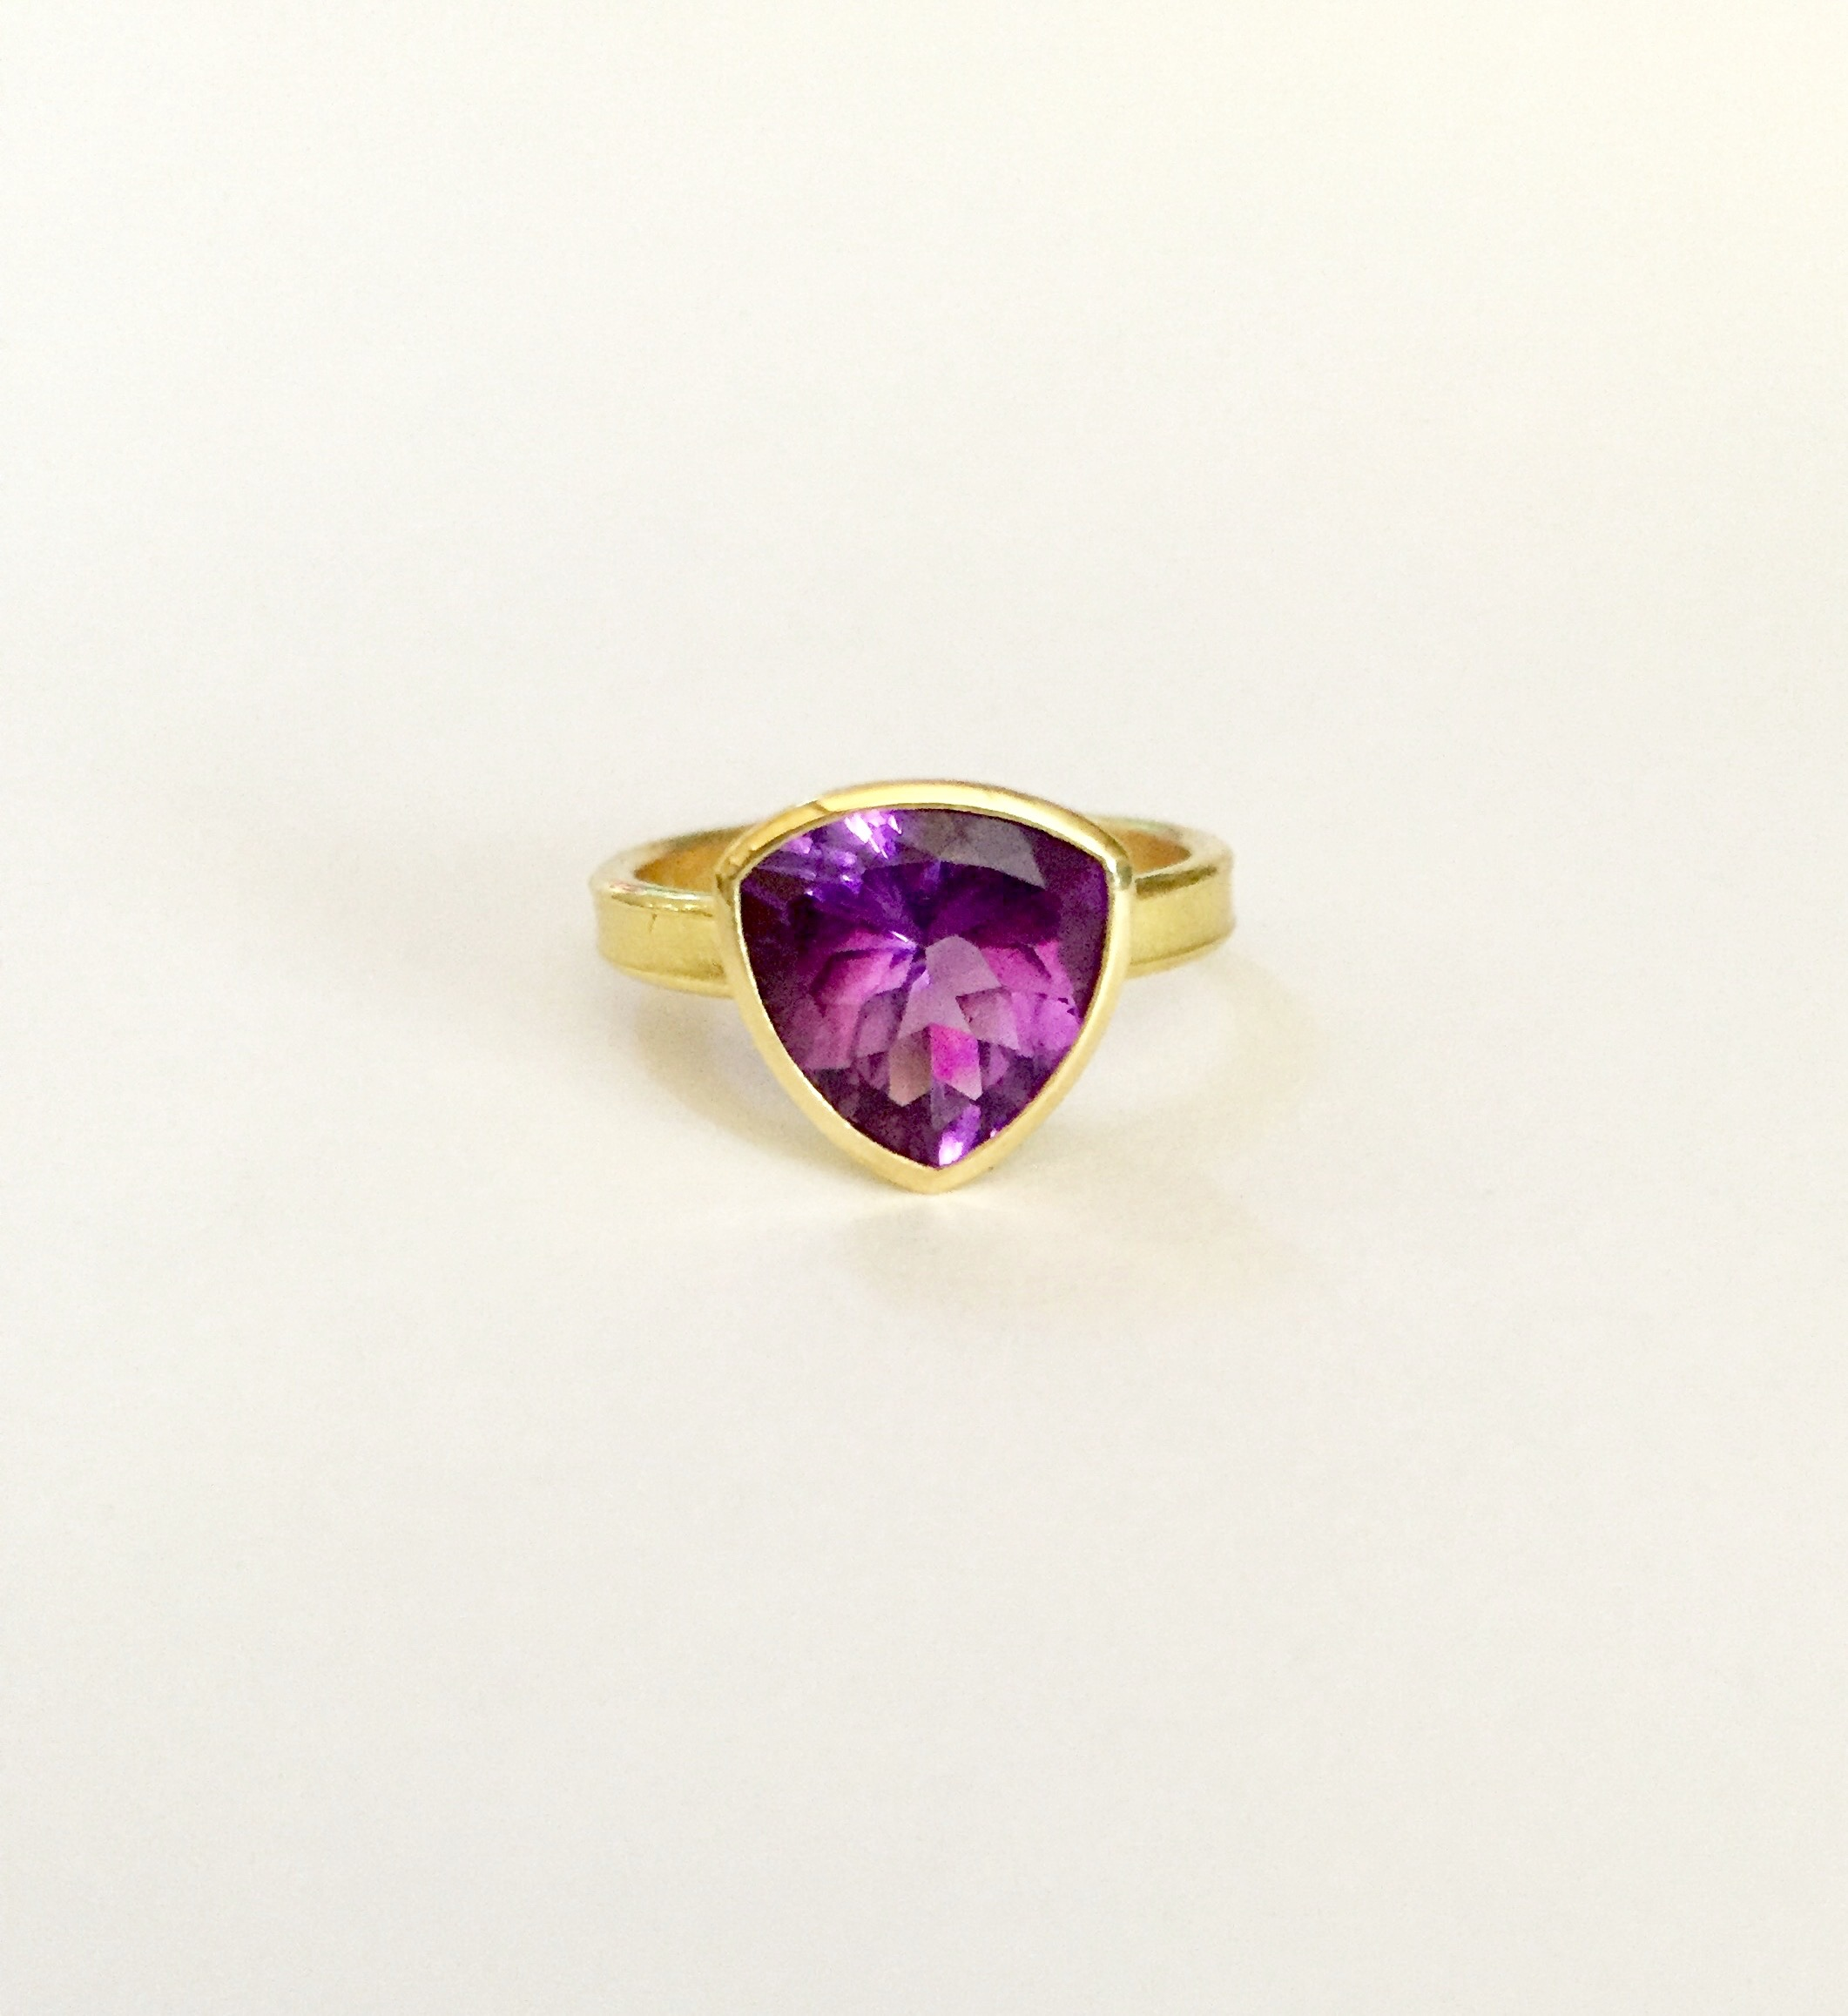 Fairtrade Trillion Amethyst Ring